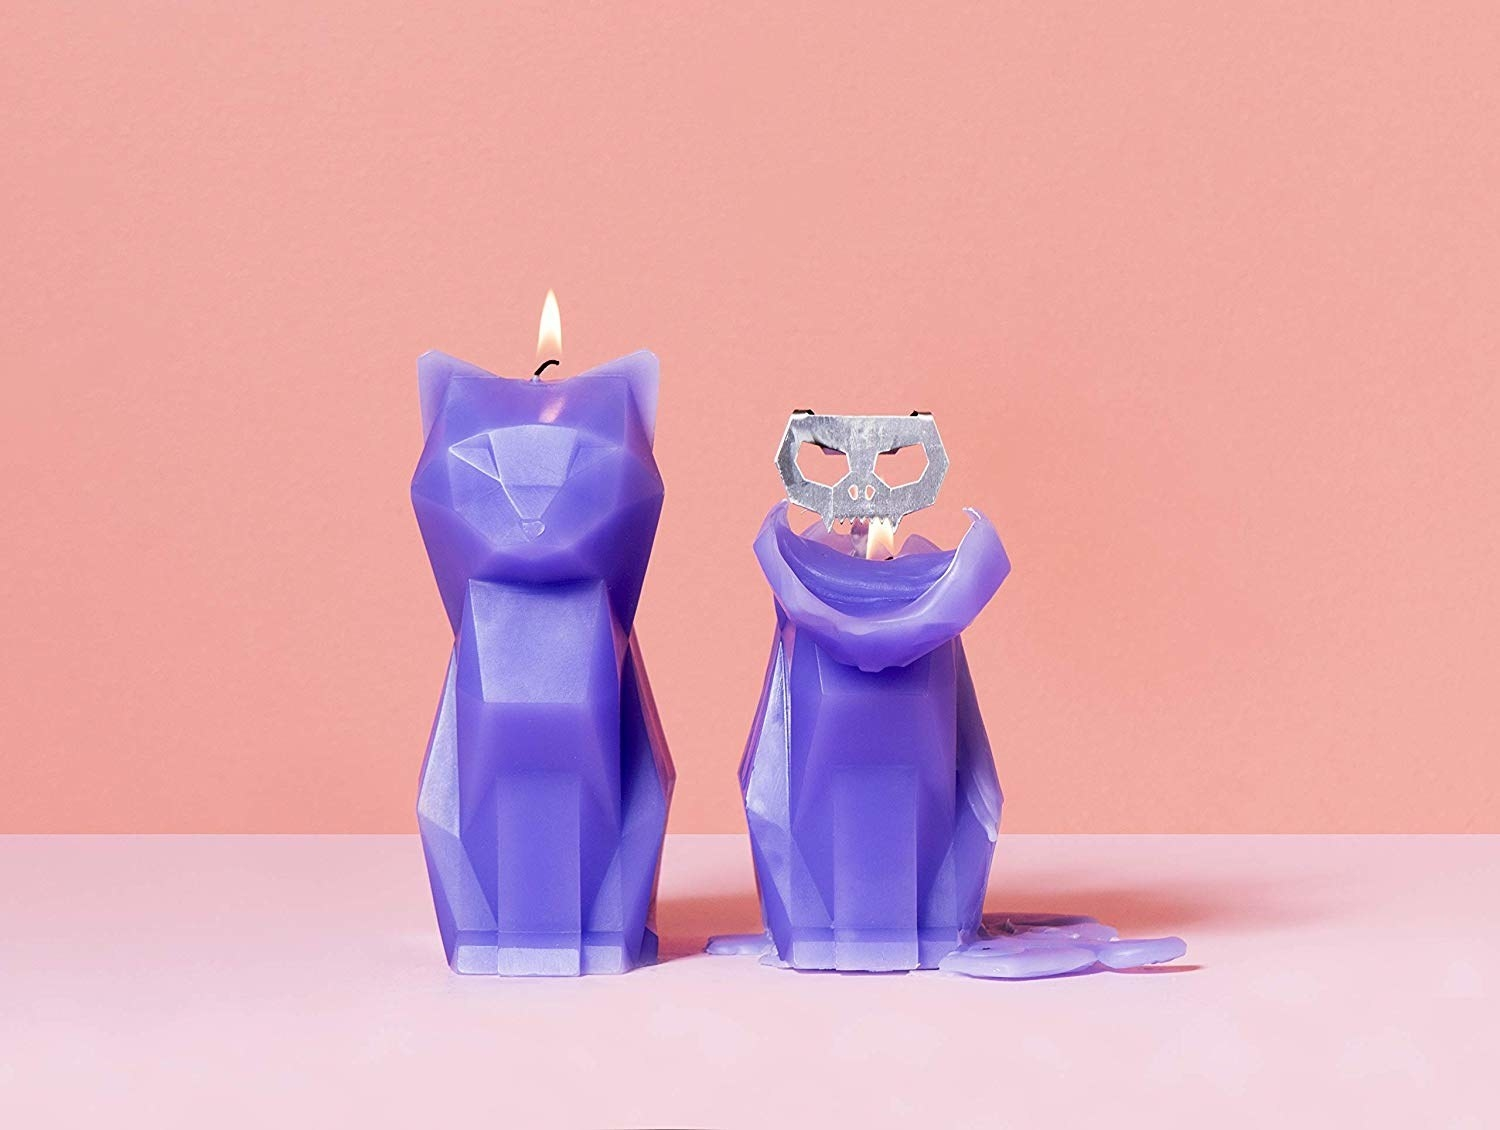 geometric cat candle next to a half melted candle with metal cat skeleton inside